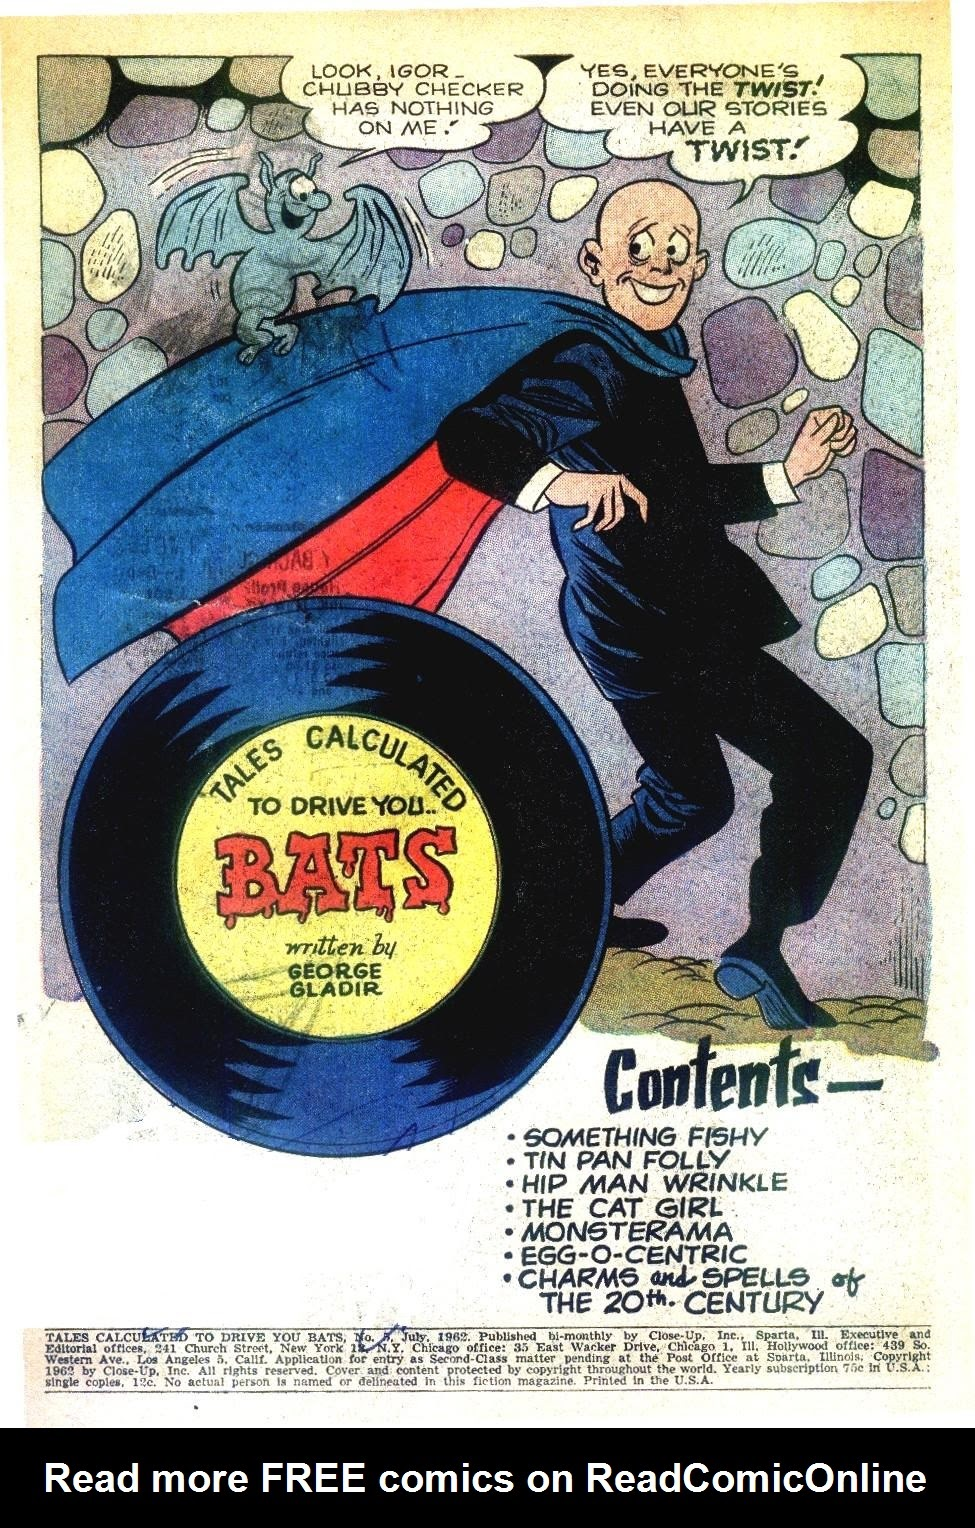 Read online Tales Calculated to Drive You Bats comic -  Issue #5 - 3